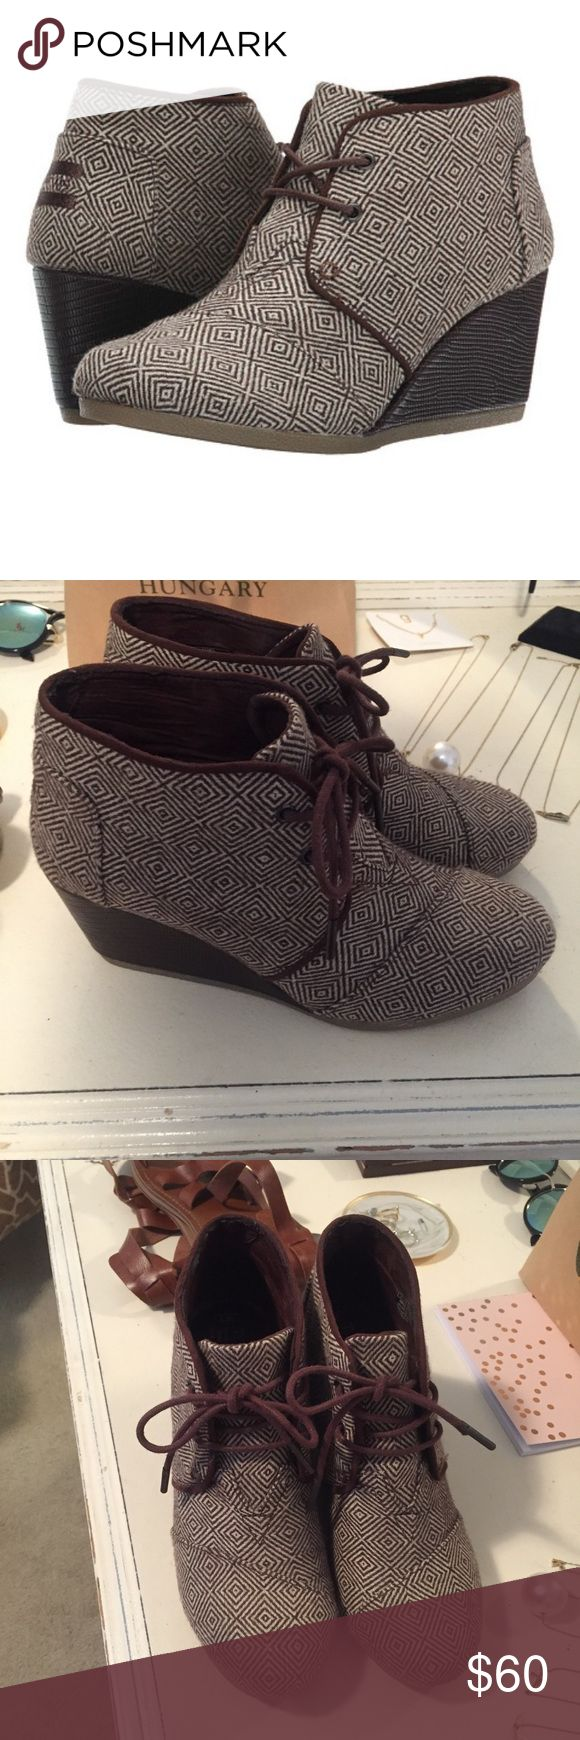 Toms desert wedge brown woven diamond booties Only worn a few times. In perfect condition! They are super comfortable! Fit true to size! TOMS Shoes Wedges